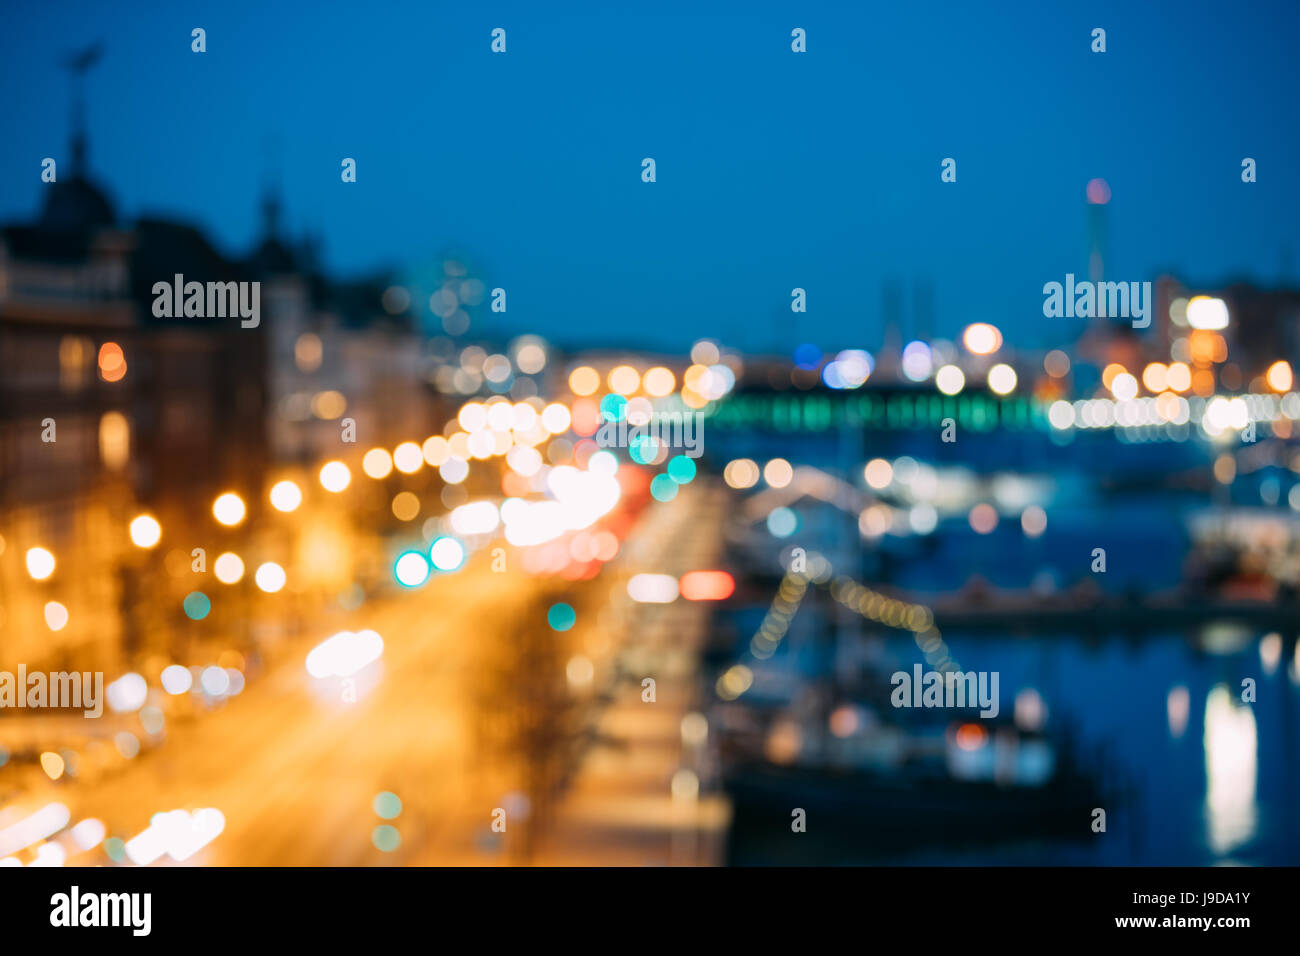 Abstract Blurred Bokeh Architectural Urban Backdrop Of Pohjoisranta Street, Helsinki, Finland. Real Blurred Colorful - Stock Image